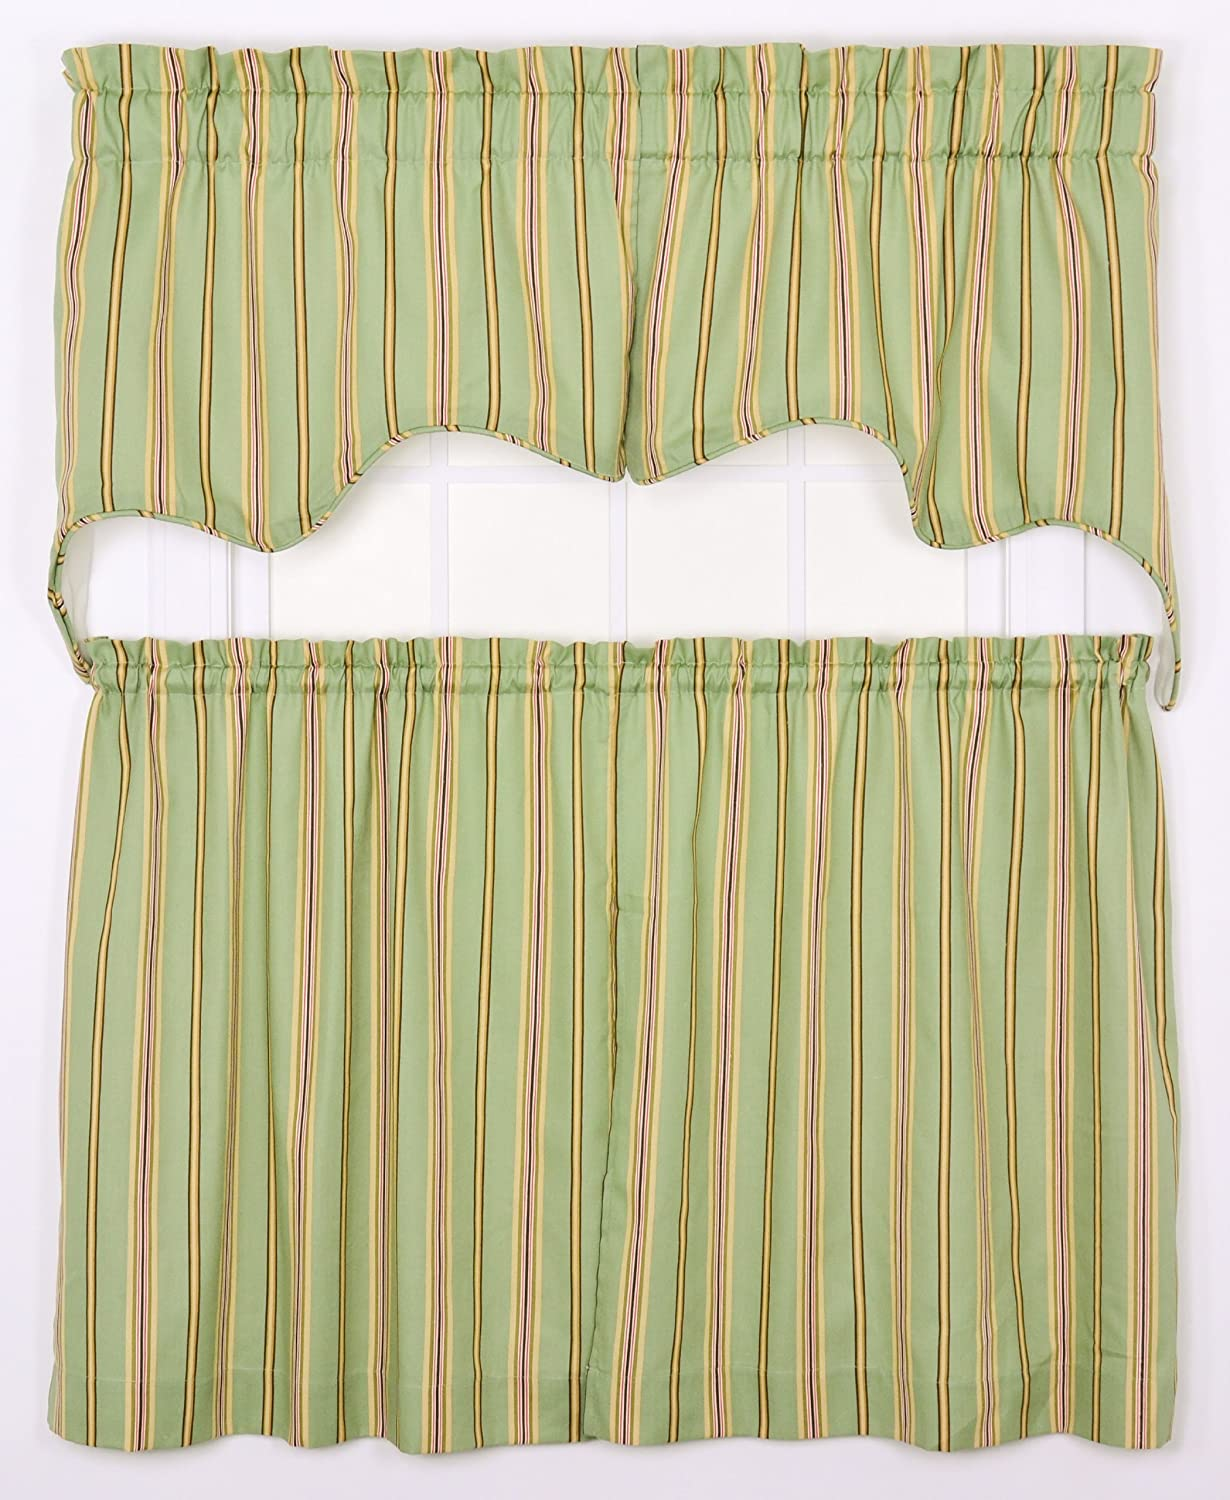 Ellis Curtain Warwick Medium Scale Stripe 70 by 28-Inch Empress Lined Swag Valance, Green, 2-Piece